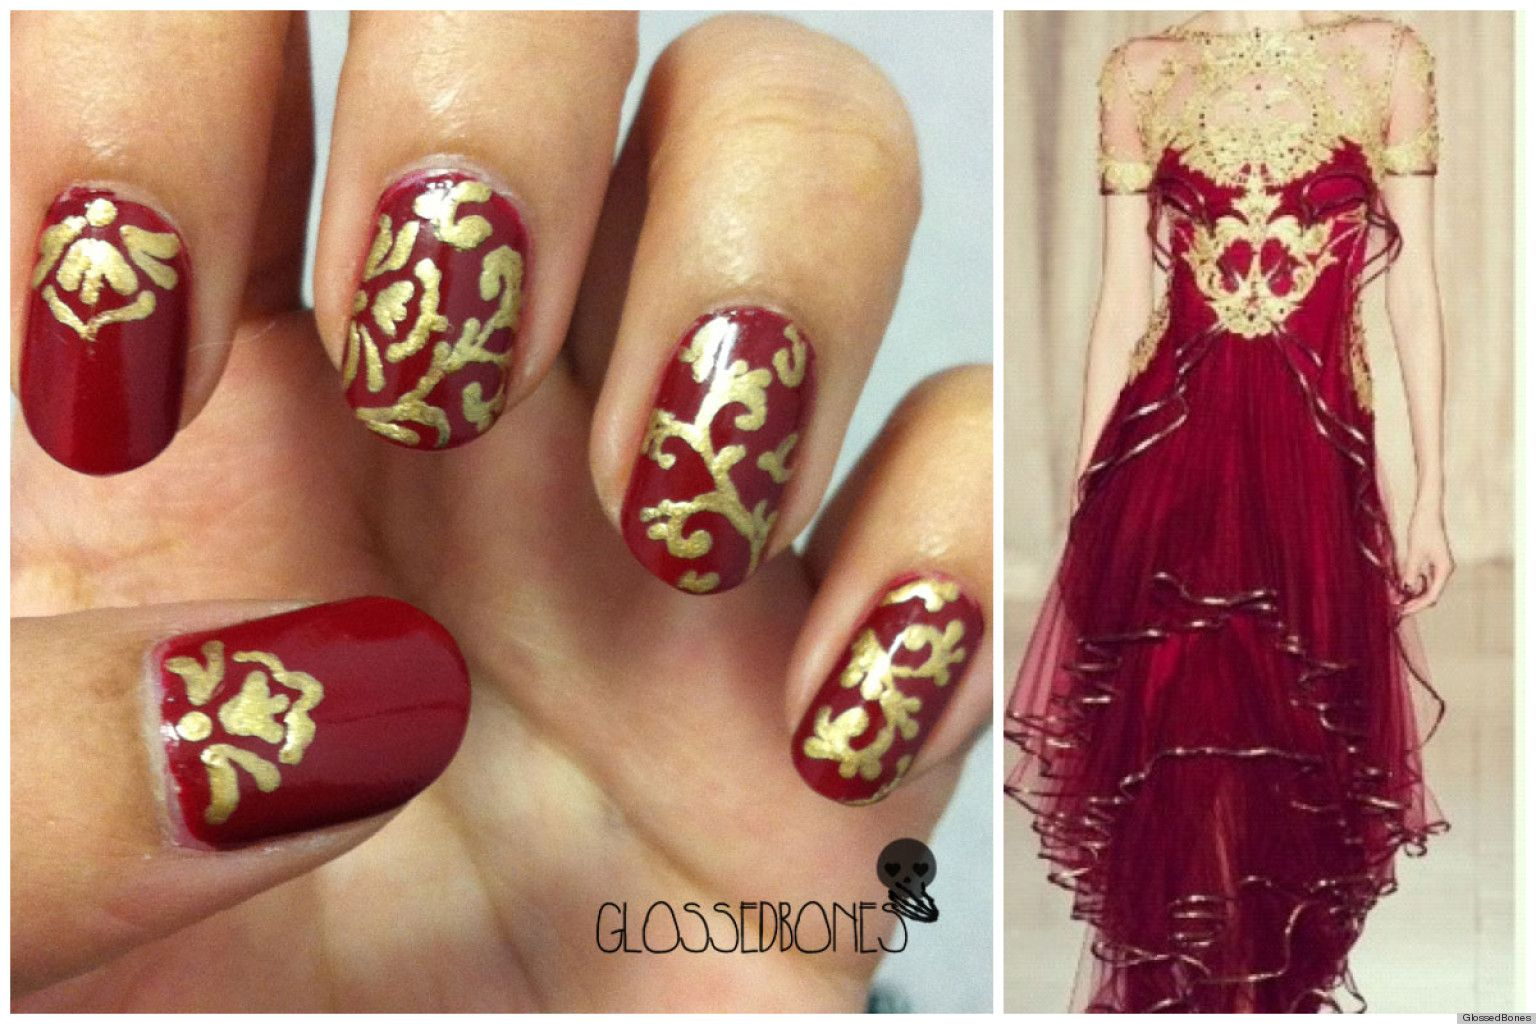 PHOTOS: Marchesa Nail Art And More Awesome Manicures | Marchesa ...